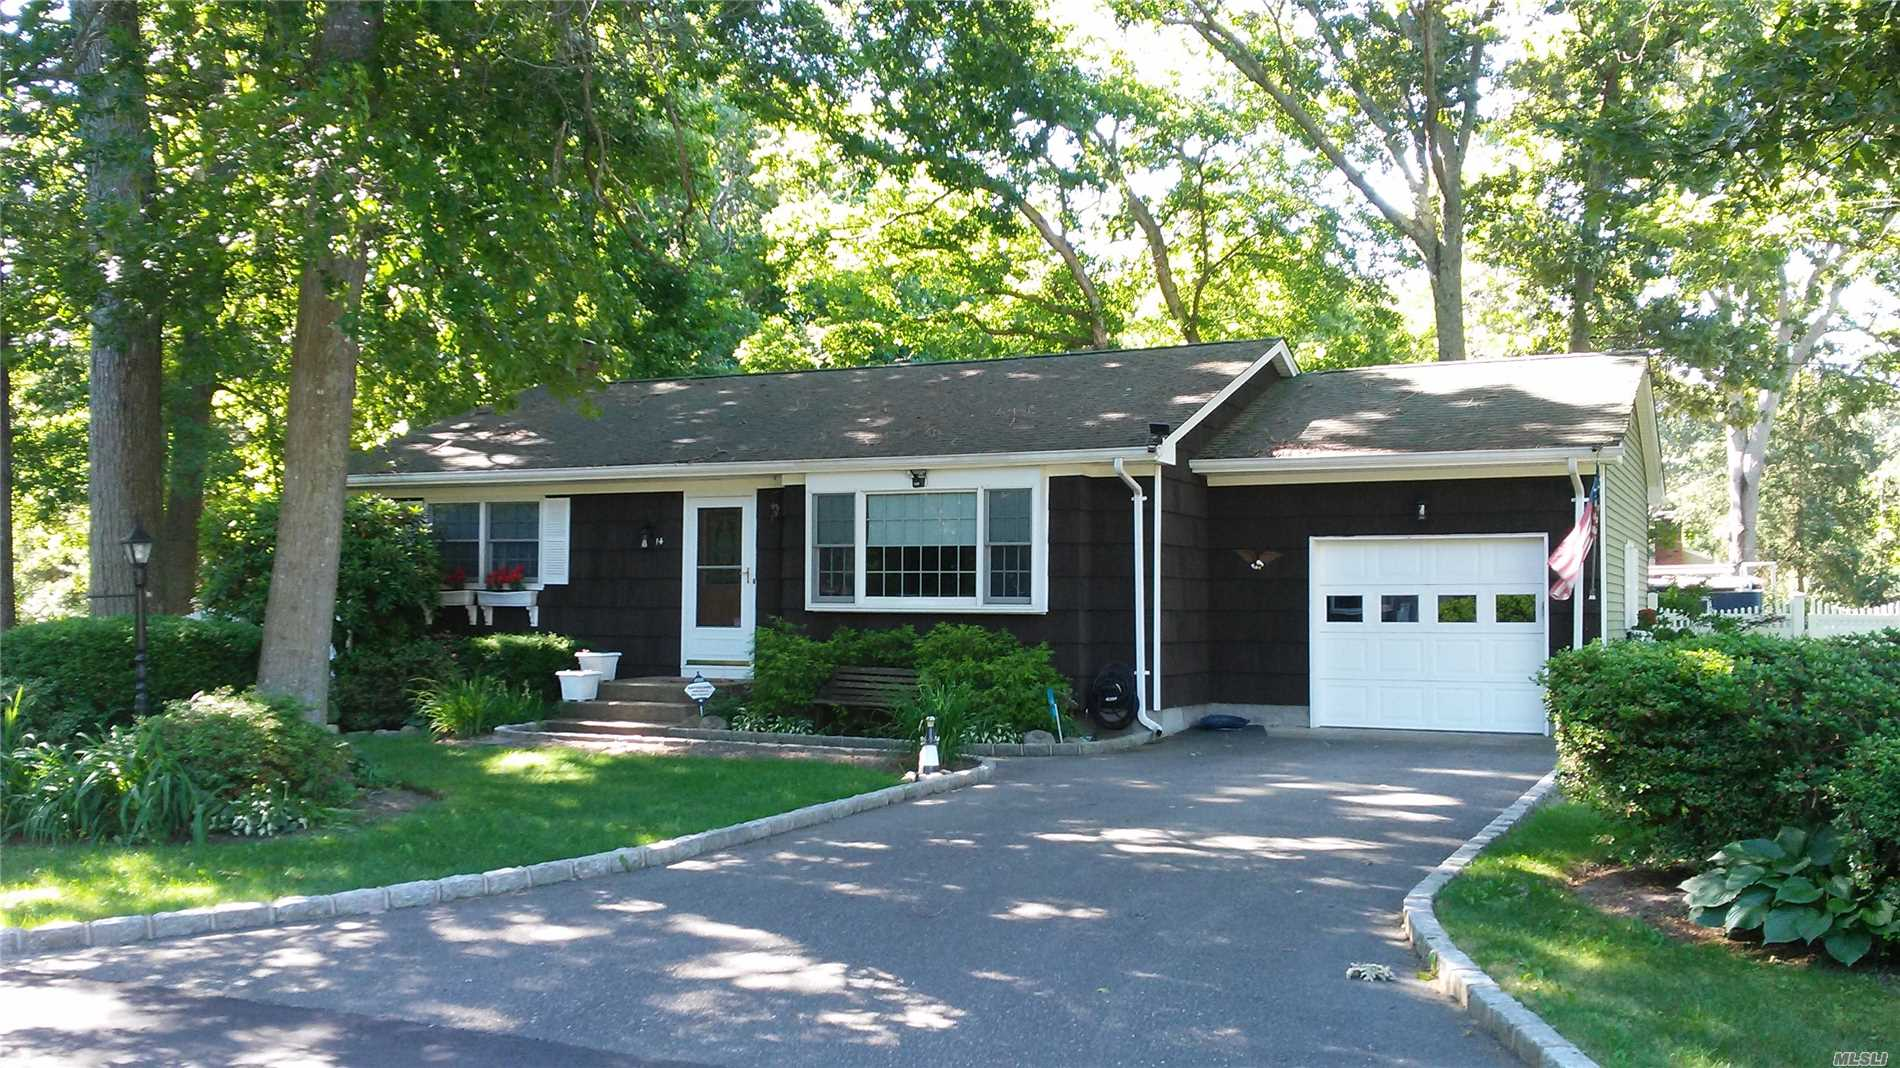 Nicely Updated Home With Wood Floors, Updated Kitchen And Bath, Lovely Landscaping On A Dead End Street!!